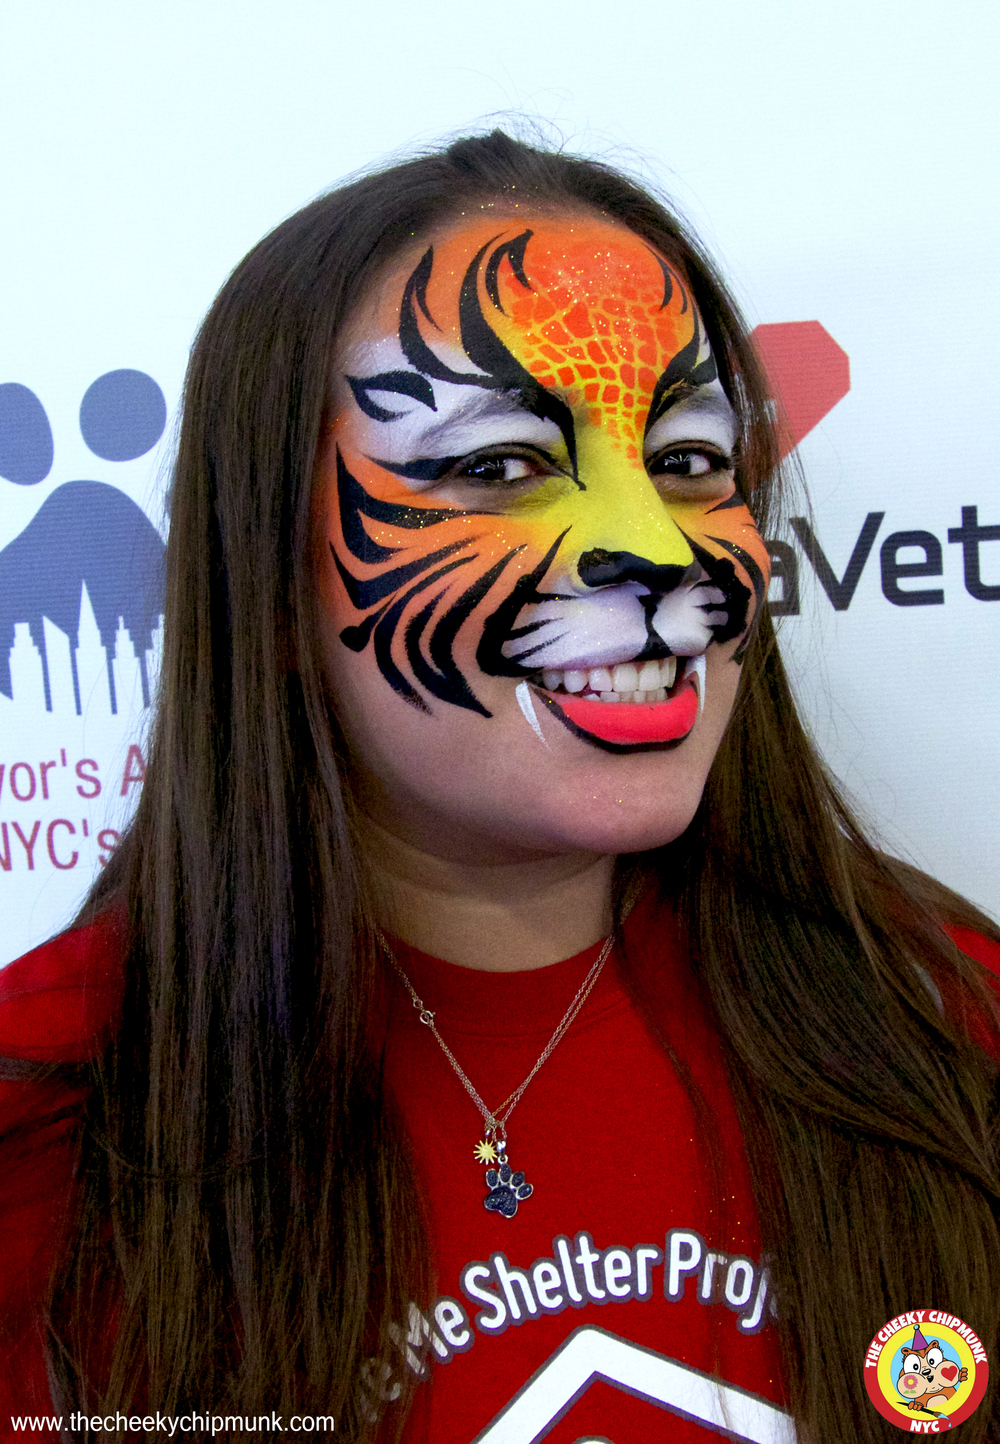 adoptapalooza may 22 2016 tiger marcela b style.jpg